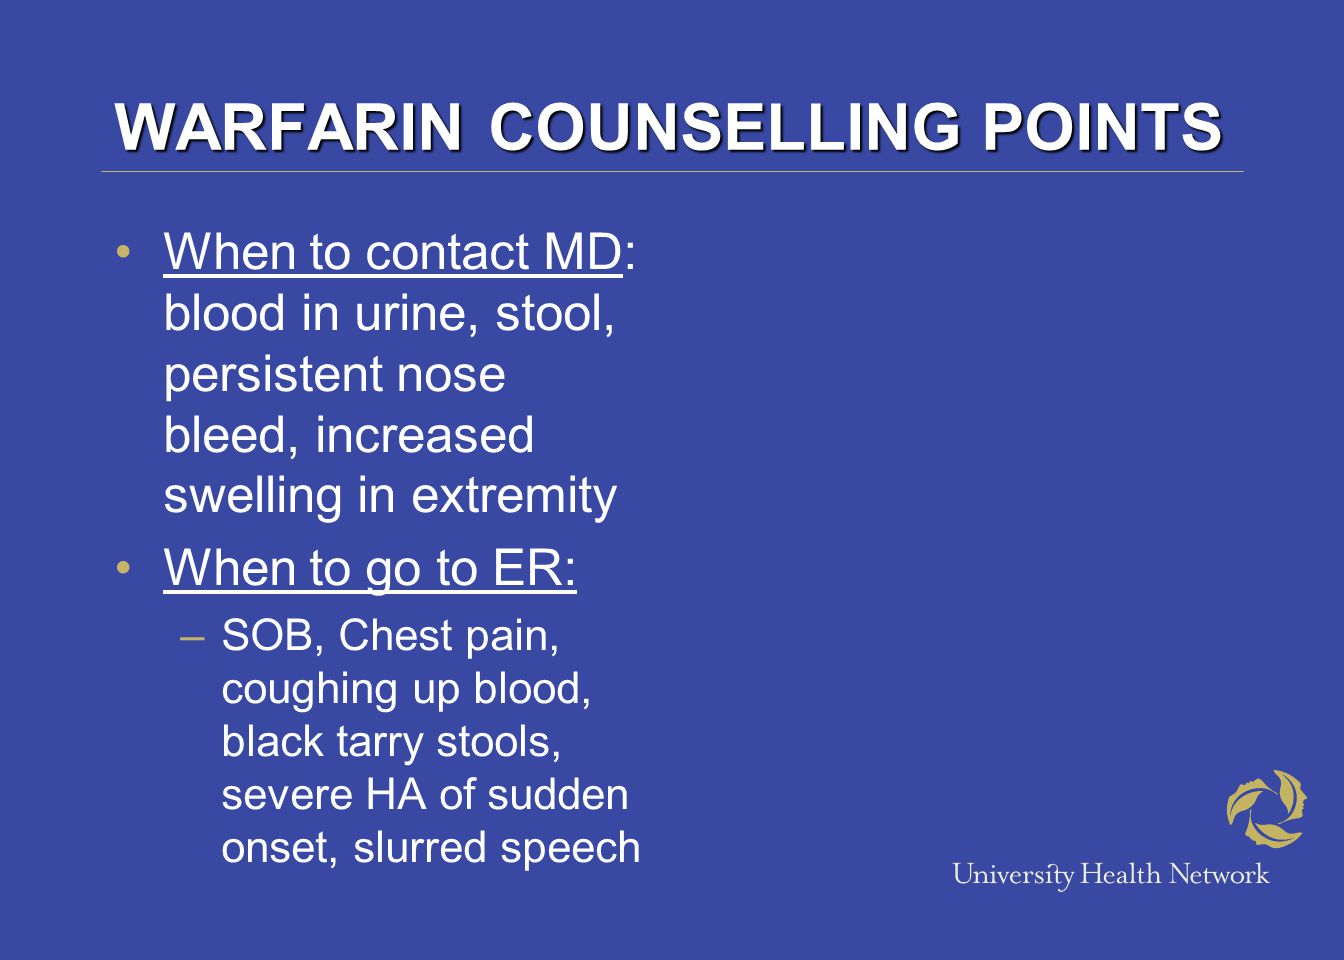 WARFARIN COUNSELLING POINTS When to contact MD: blood in urine, stool, persistent nose bleed, increased swelling in extremity When to go to ER: –SOB, Chest pain, coughing up blood, black tarry stools, severe HA of sudden onset, slurred speech